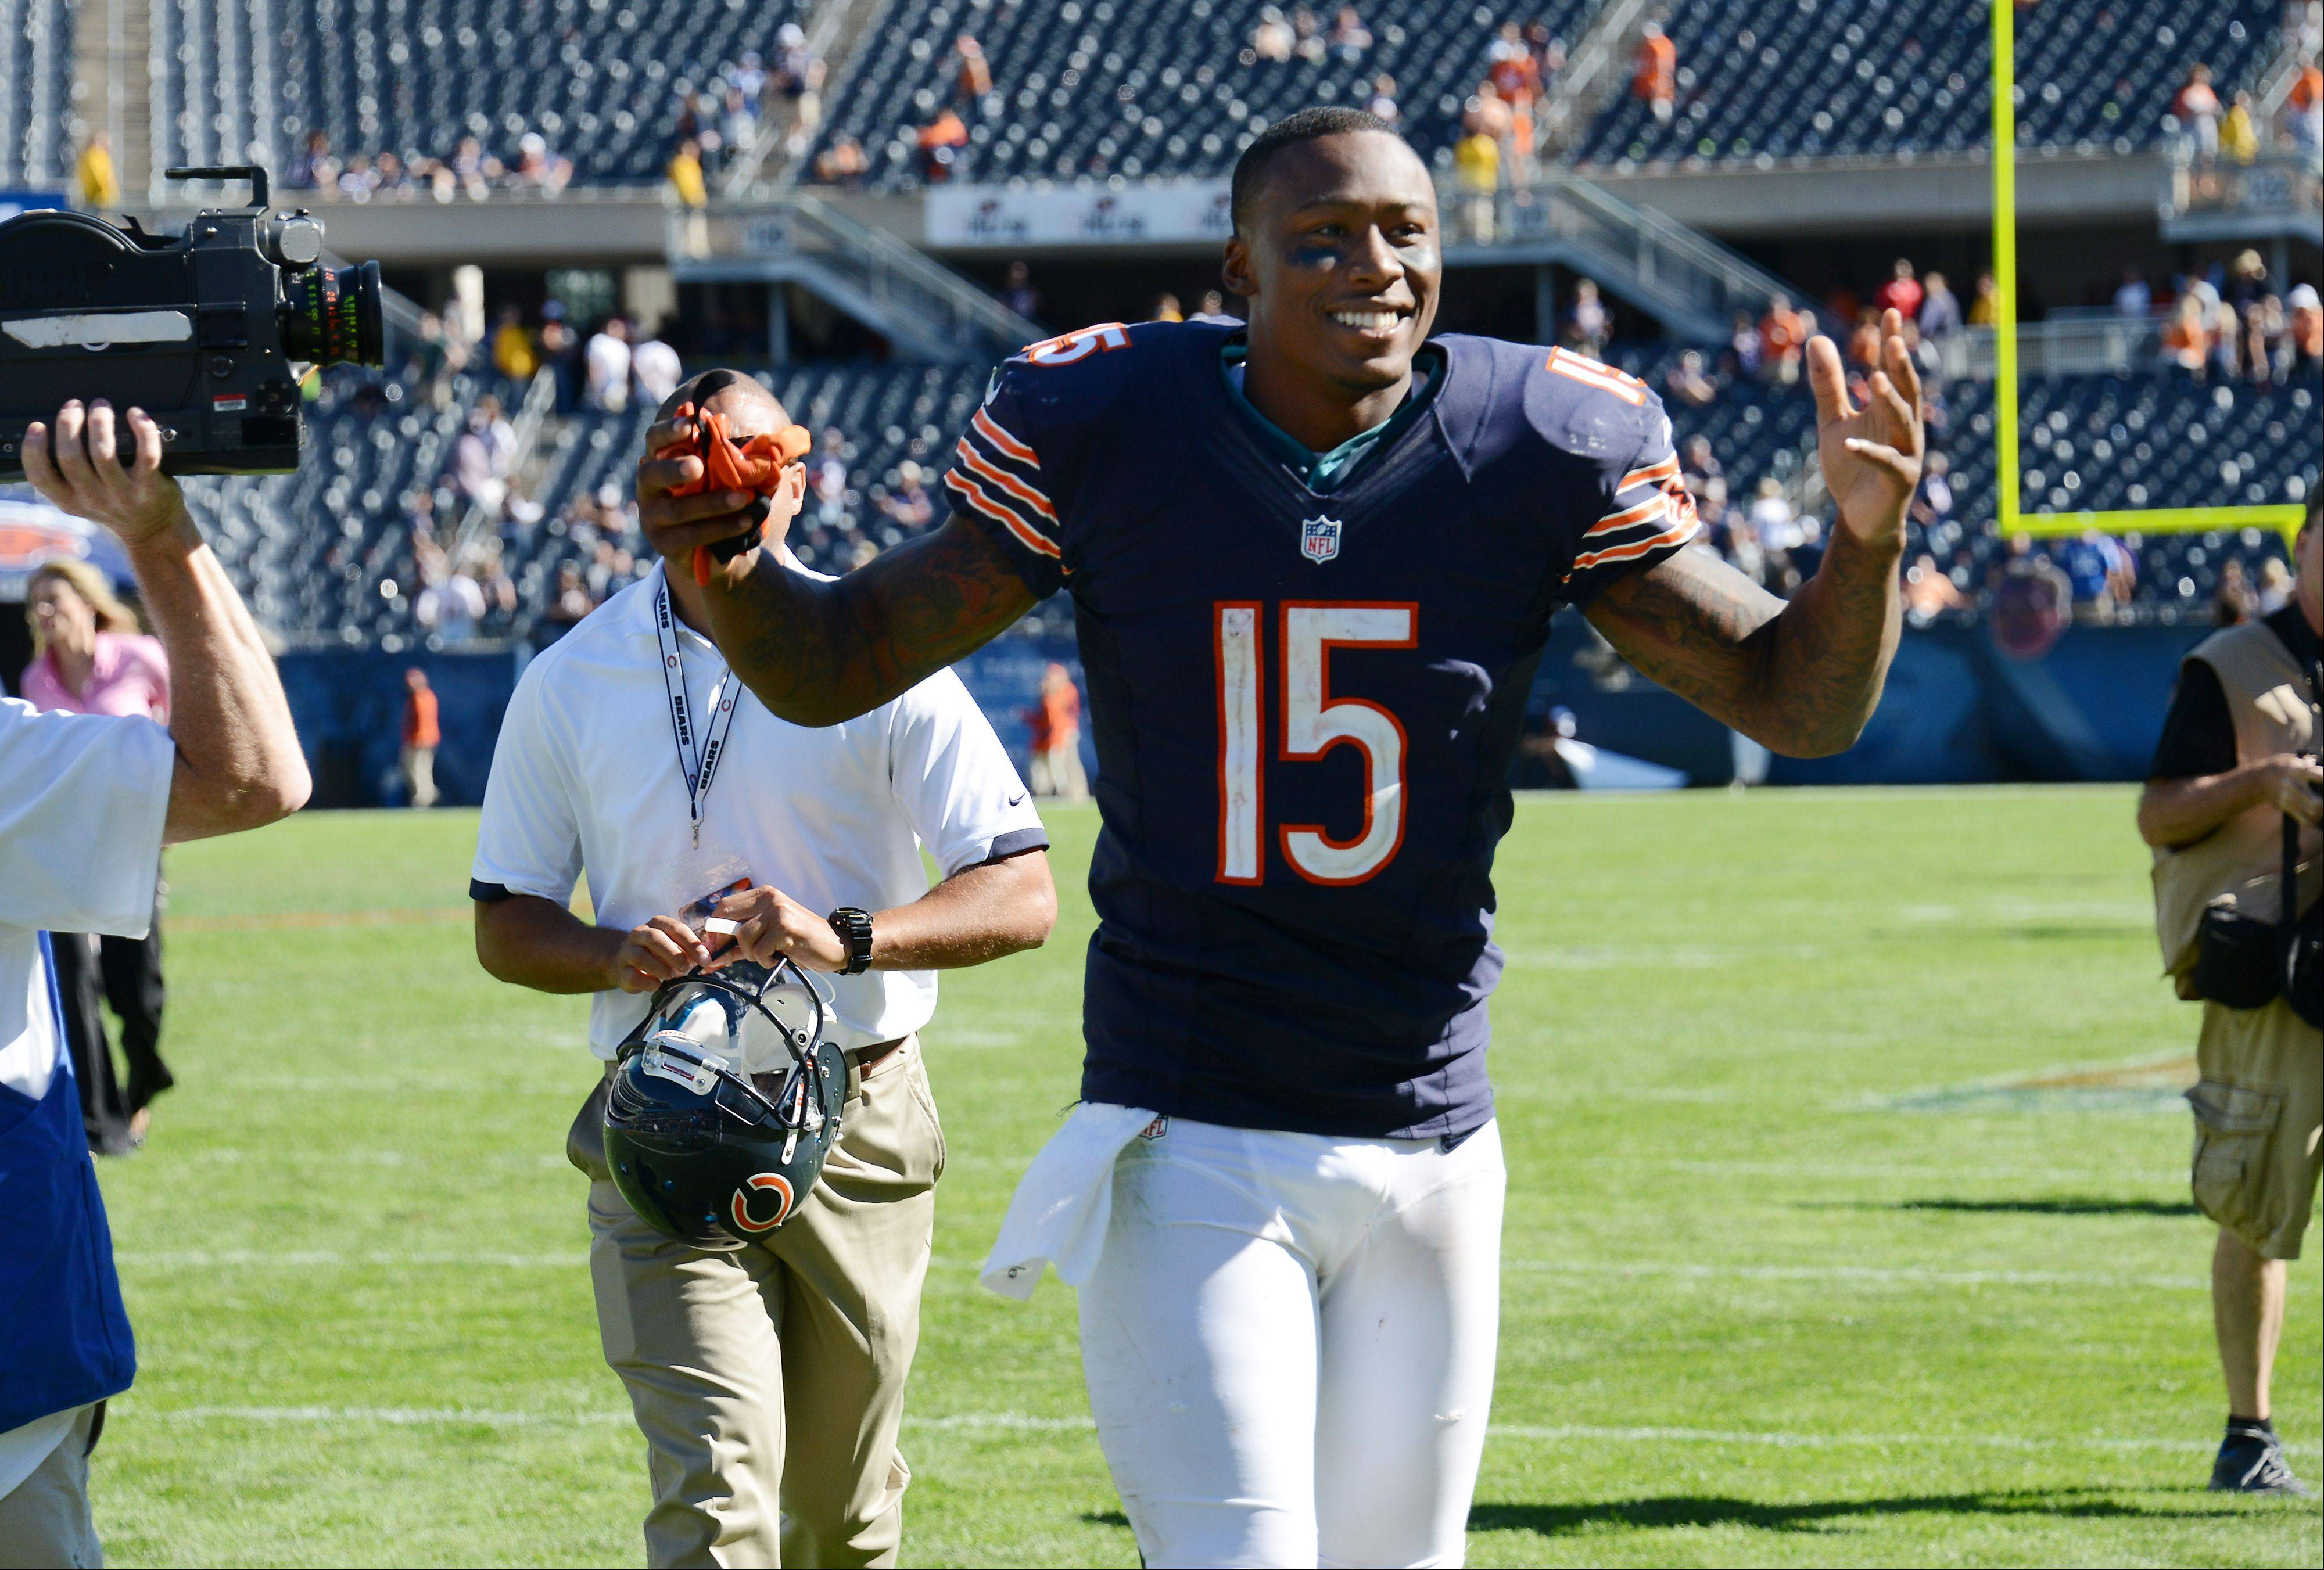 That's one big wide receiver Bears have